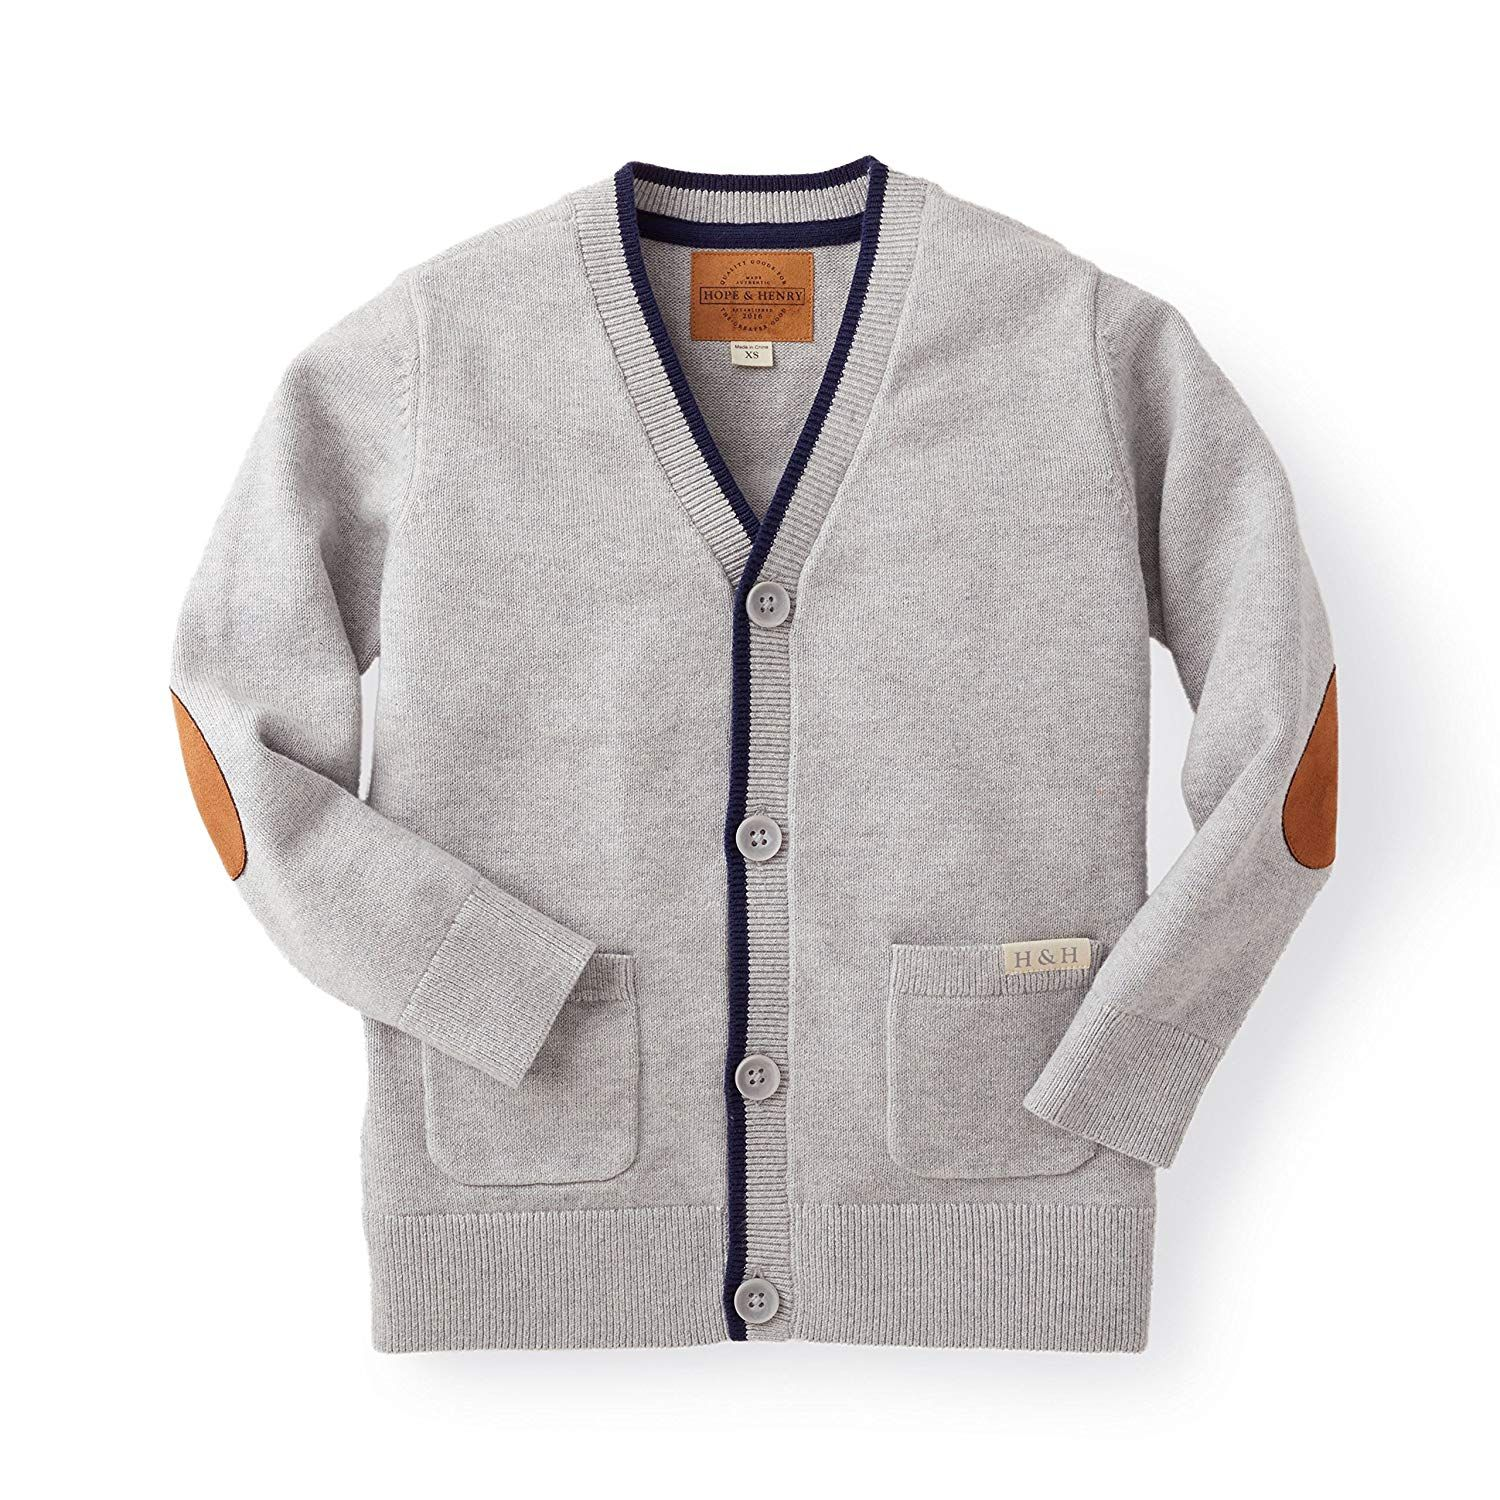 What to wear boys dressy holiday Hope & Henry Boys' Cardigan Sweater Made  with Organic Cotton…   Grey cardigan sweater, Knit sweater cardigan,  Quality kids clothes